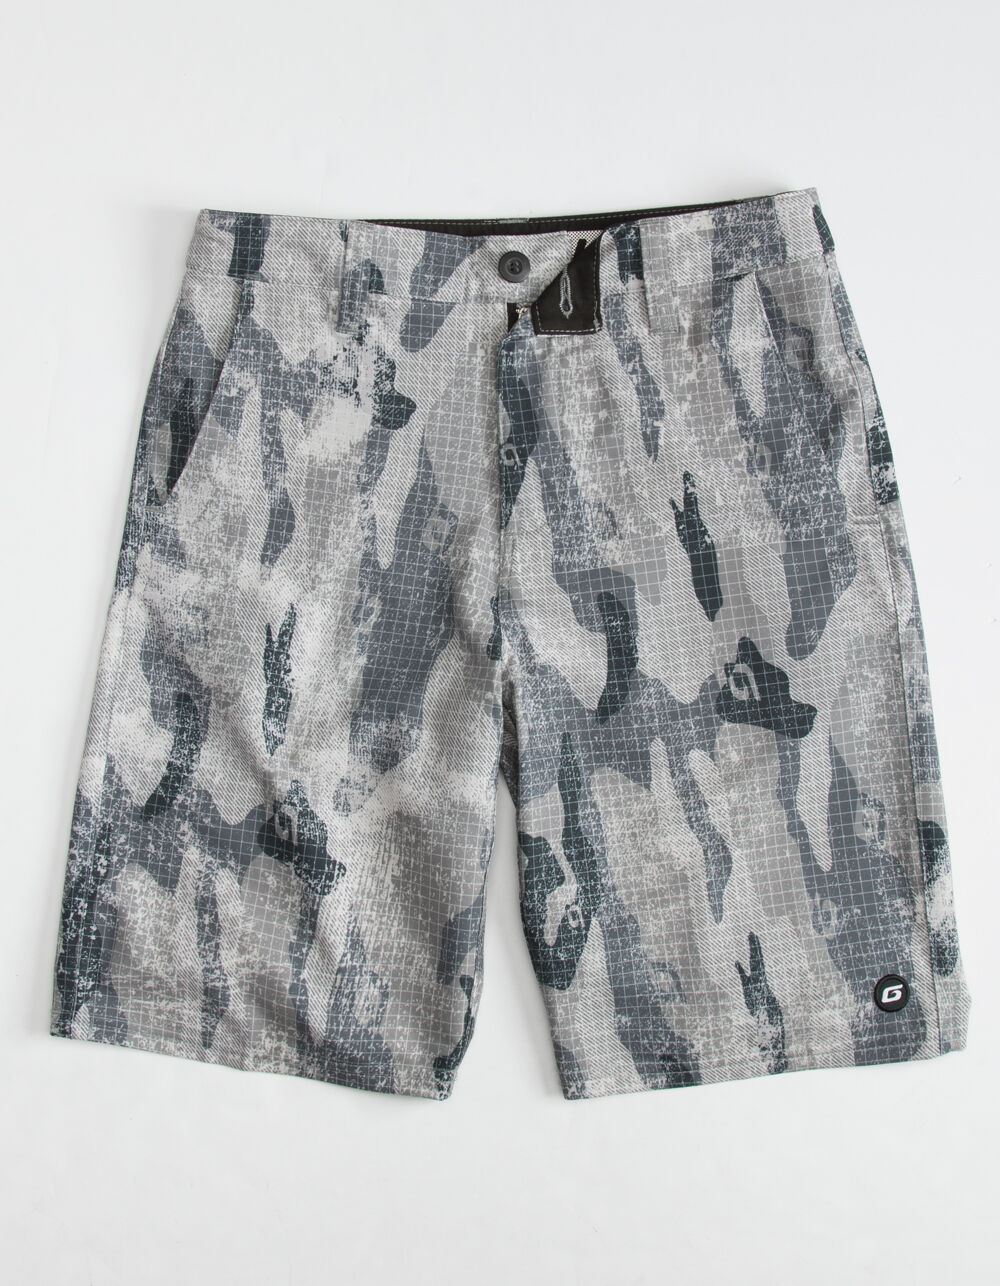 GROM Off Road Boys Camo Hybrid Shorts